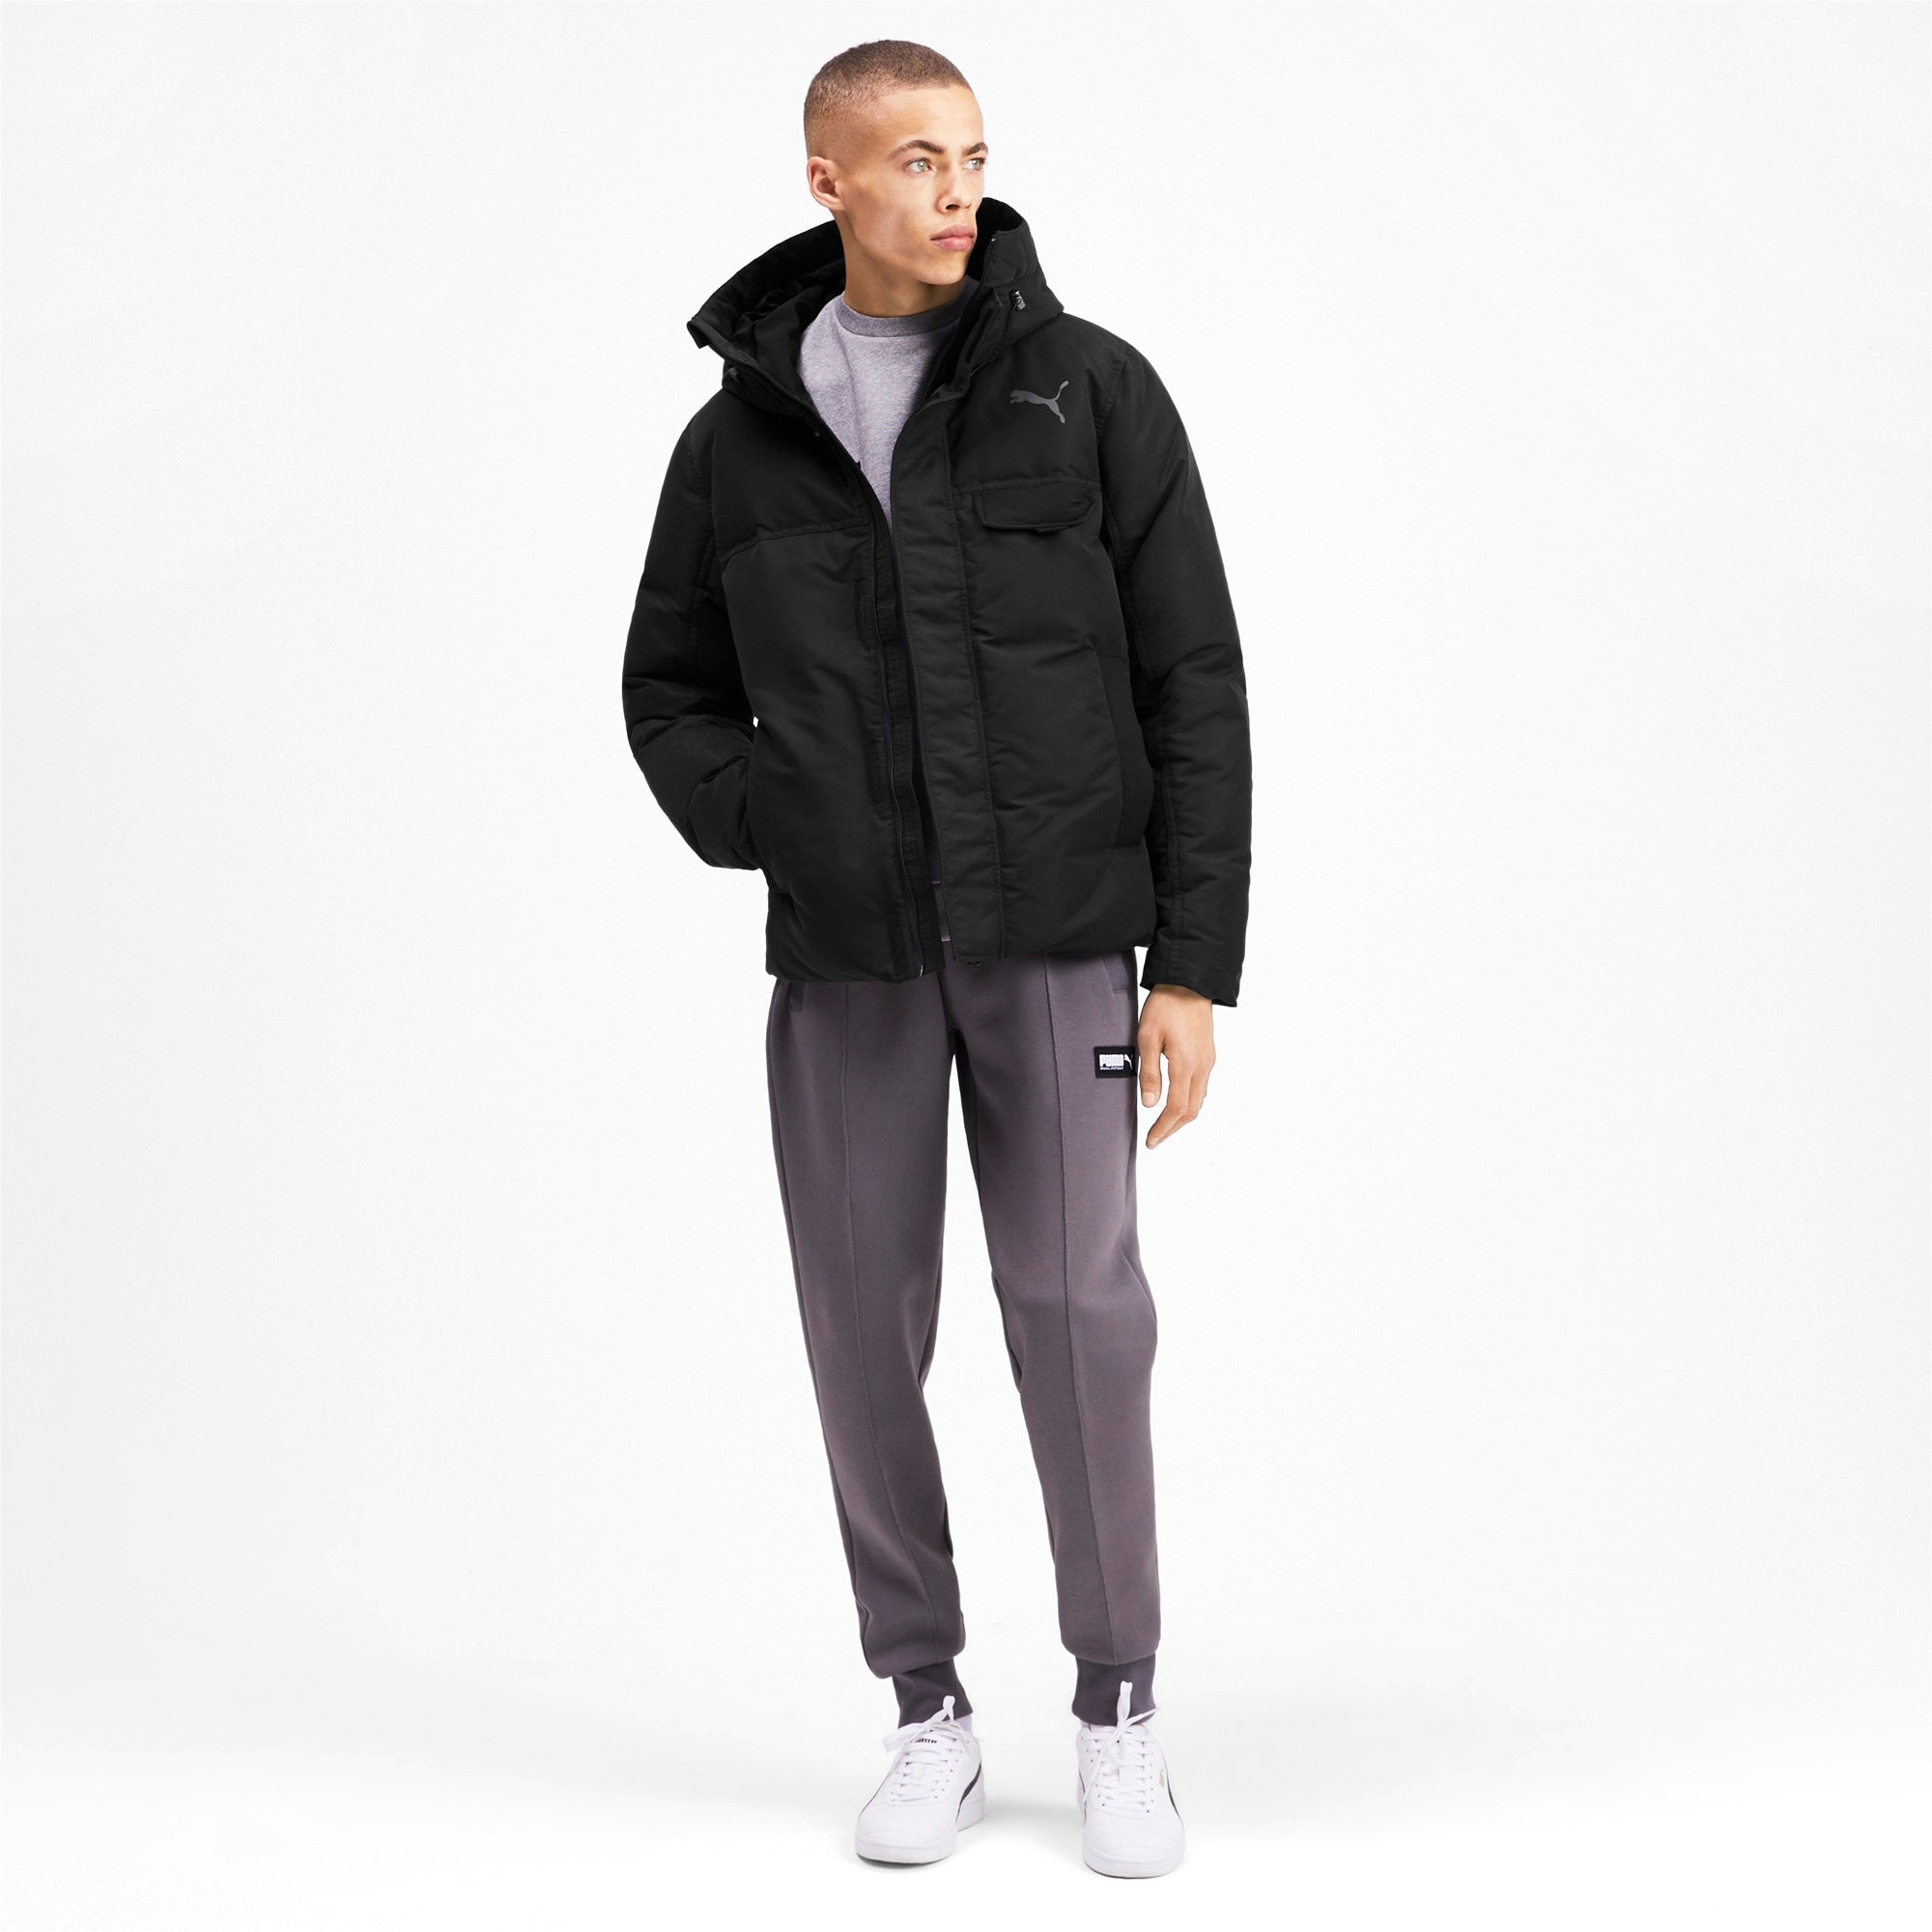 Thumbnail 3 of Streetstyle 480 HD Down Men's Jacket, Puma Black, medium